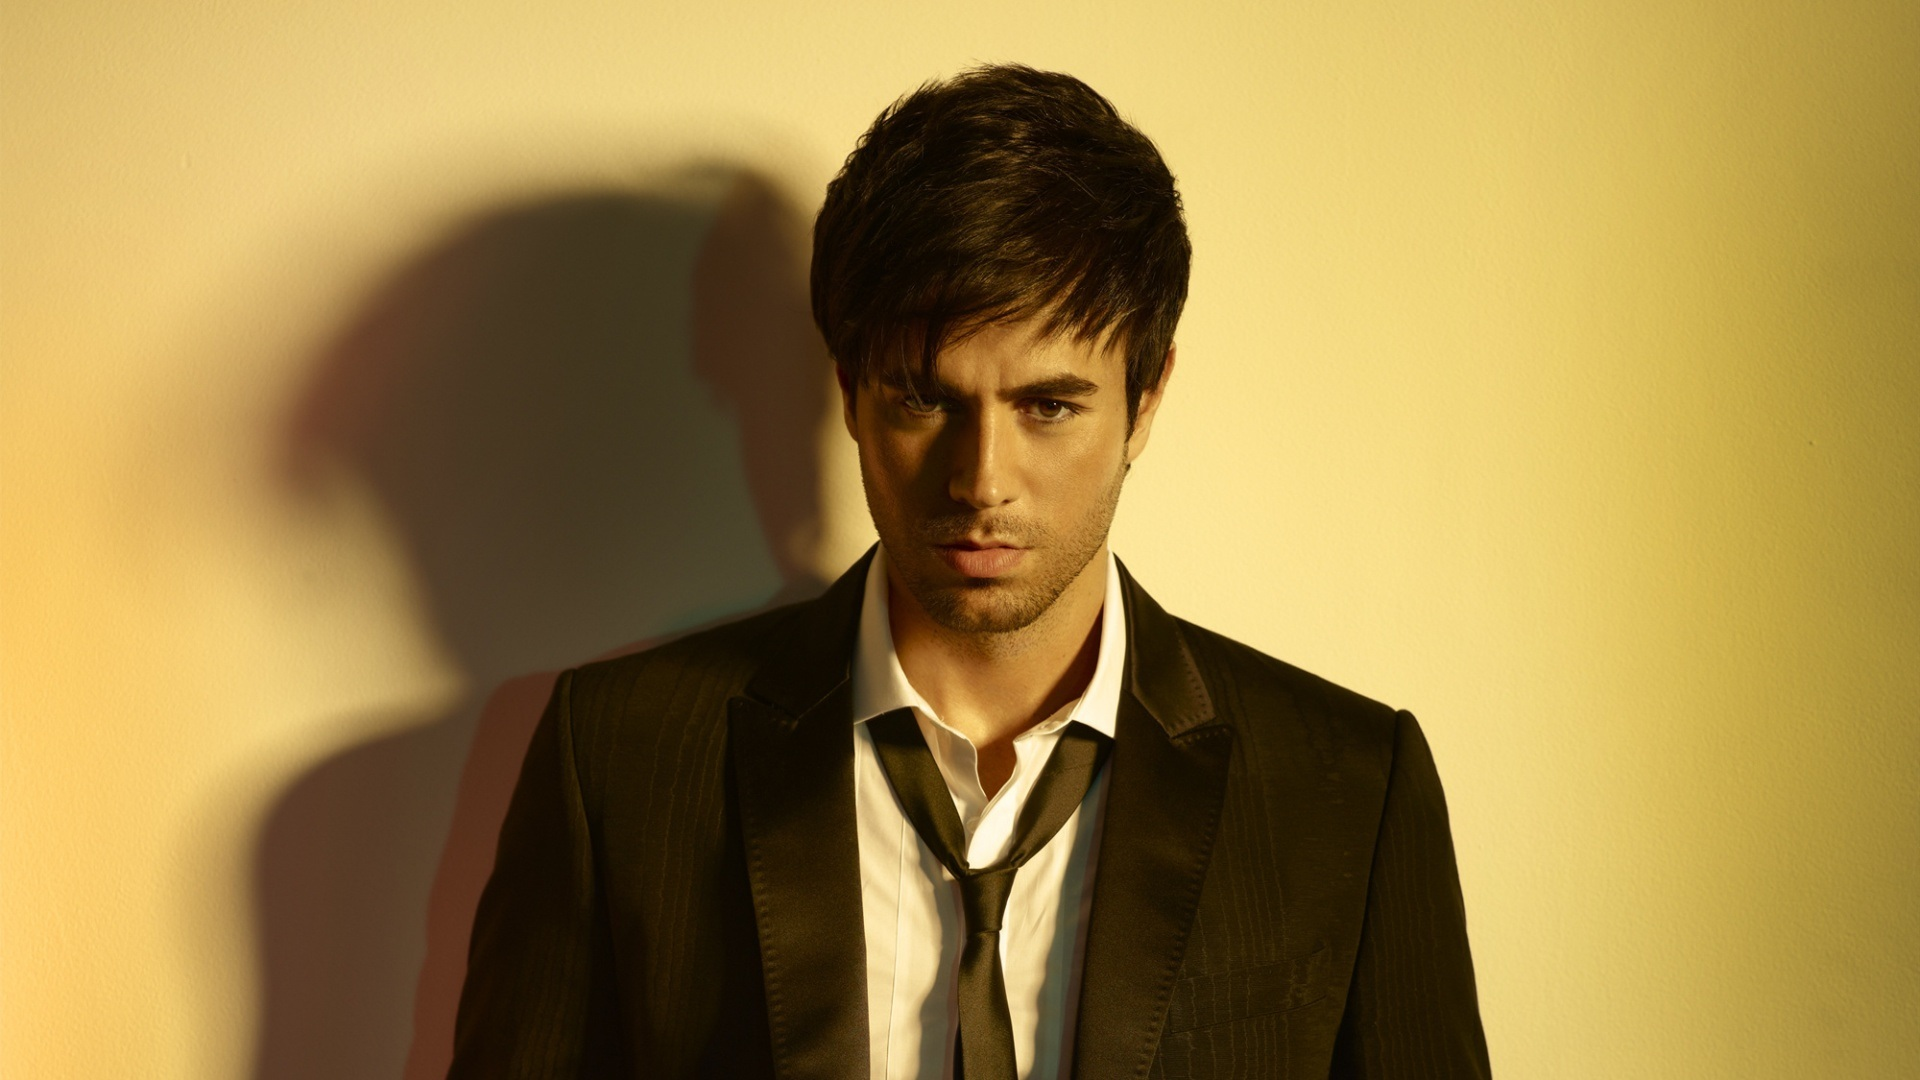 enrique iglesias singer hot hd wallpapers all hd wallpapers. Black Bedroom Furniture Sets. Home Design Ideas